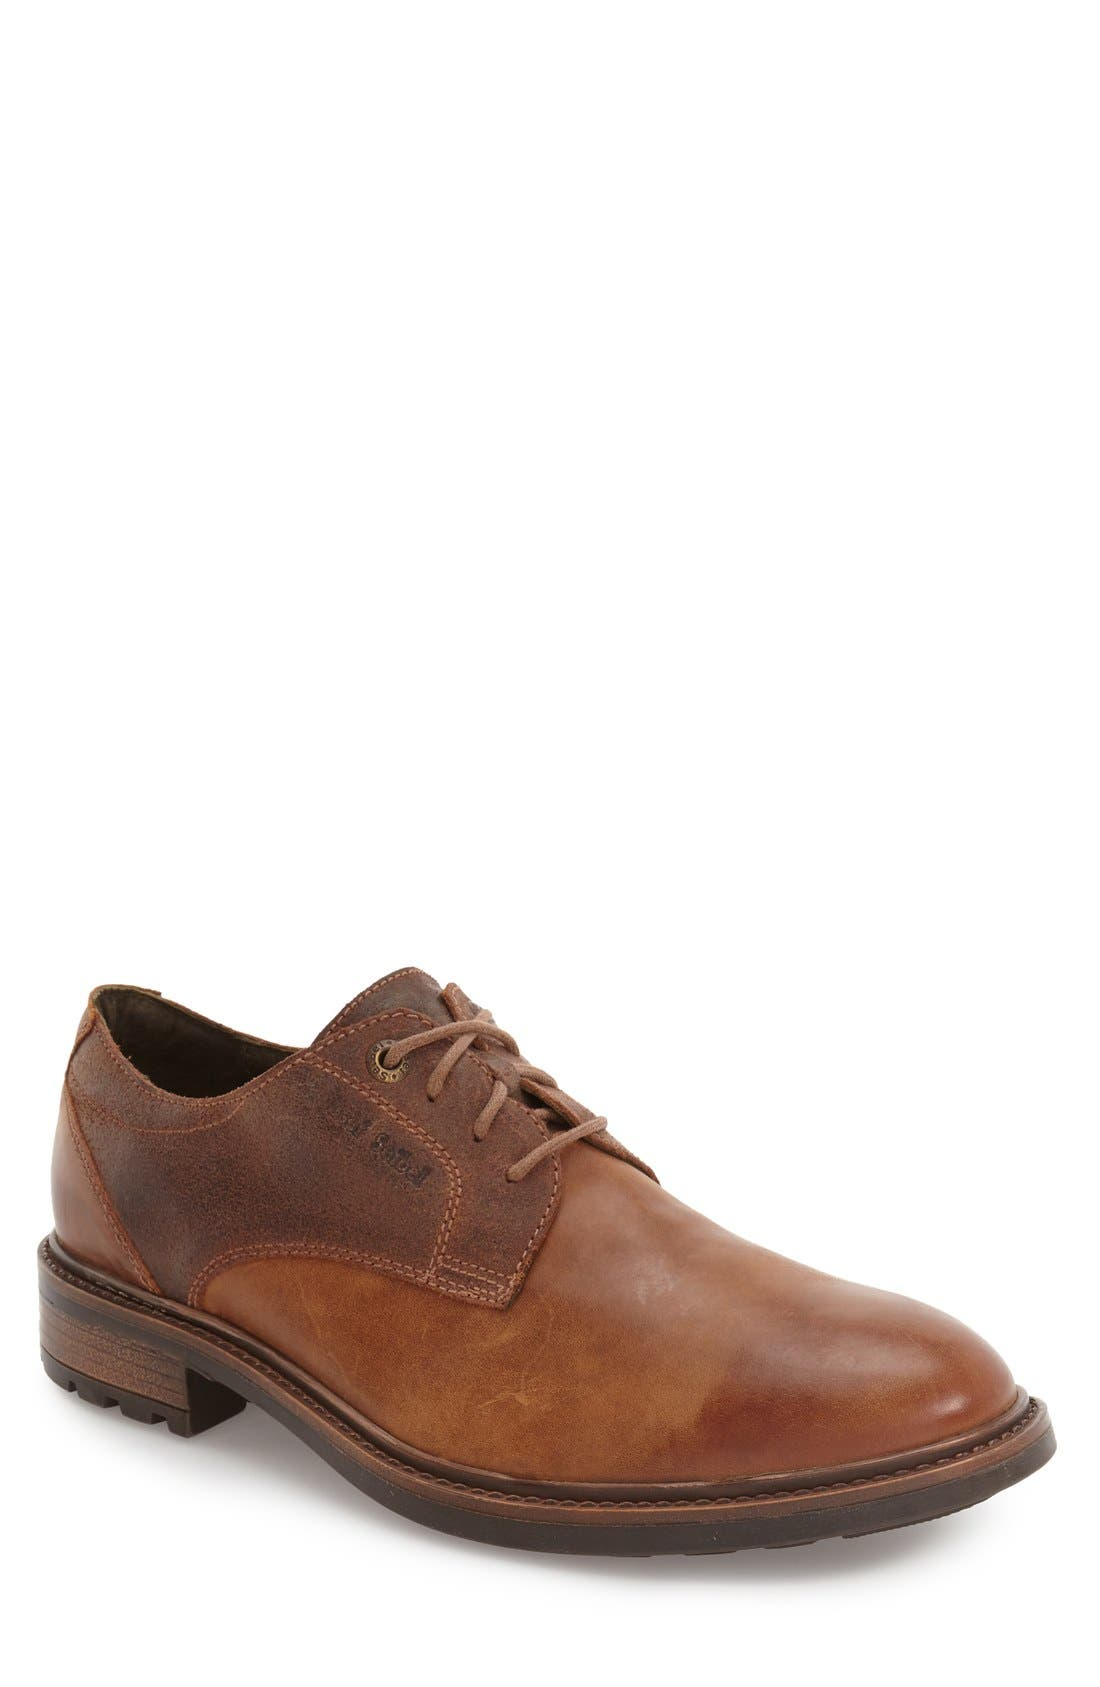 Oscar Plain Toe Derby,                         Main,                         color, CASTAGNE LEATHER